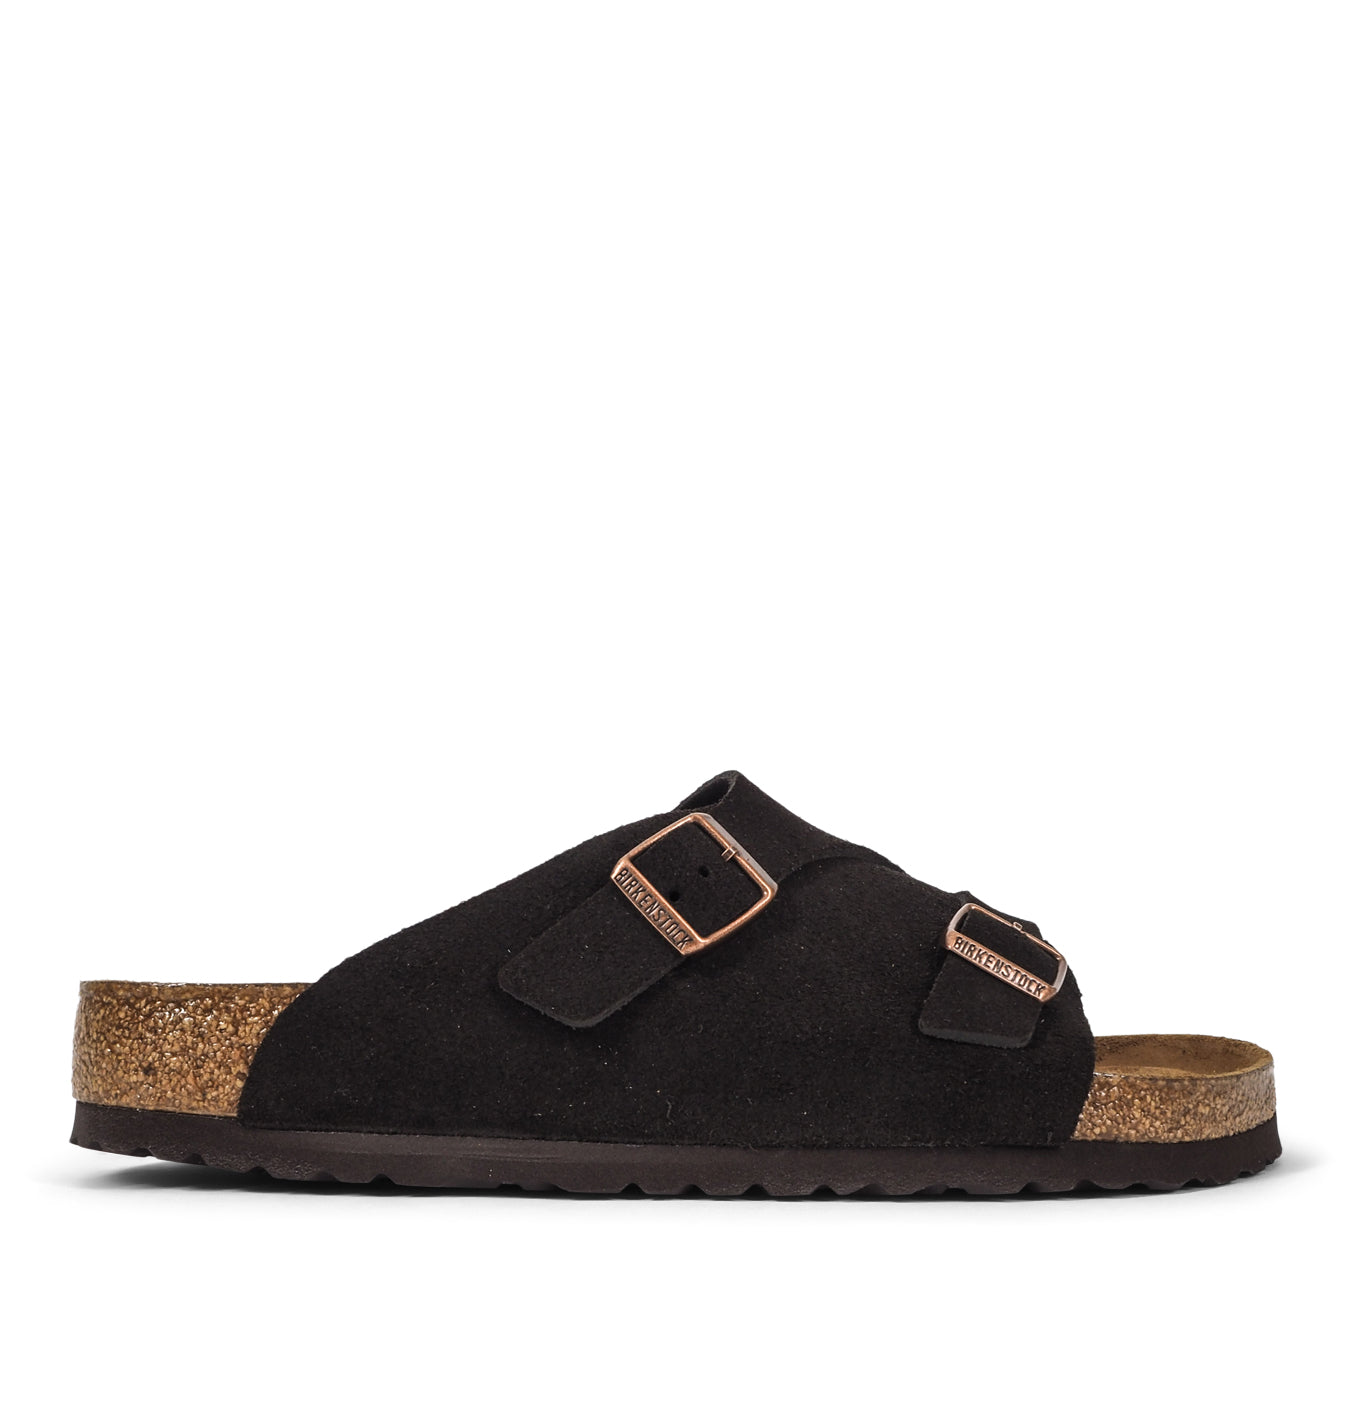 Image of   Birkenstock - Zürich Sandals